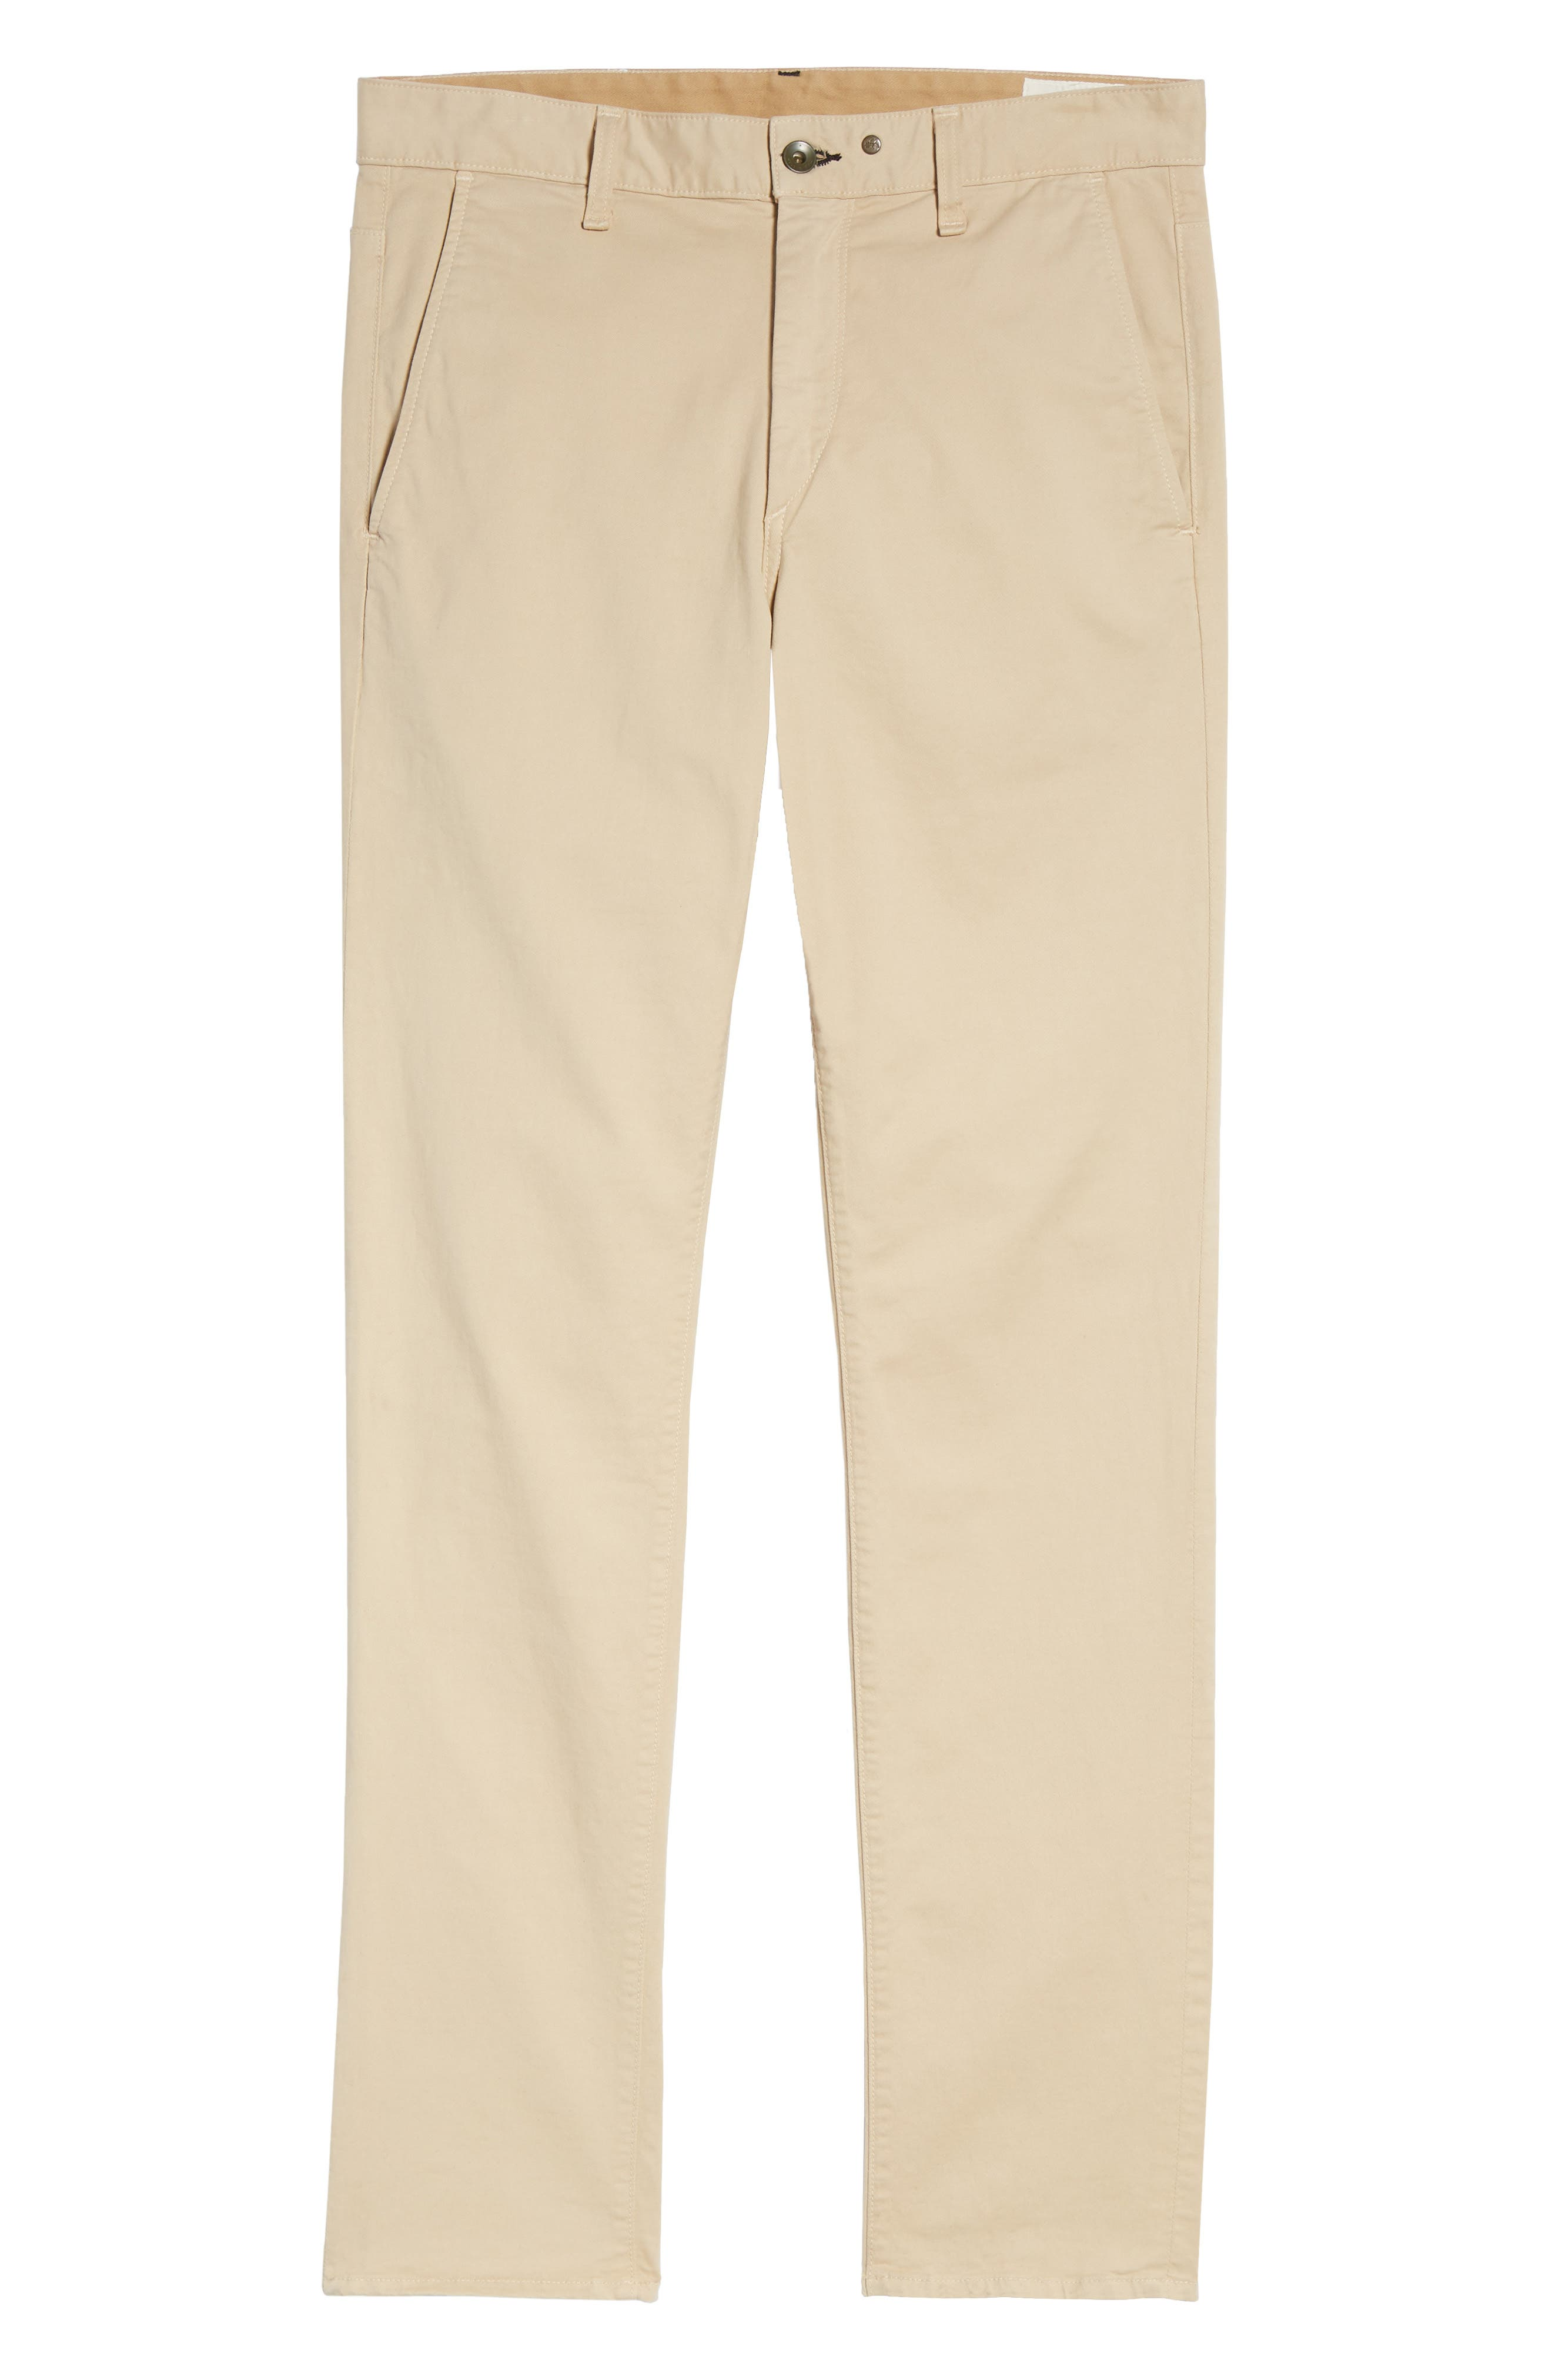 Fit 2 Chinos,                             Alternate thumbnail 6, color,                             BEIGE